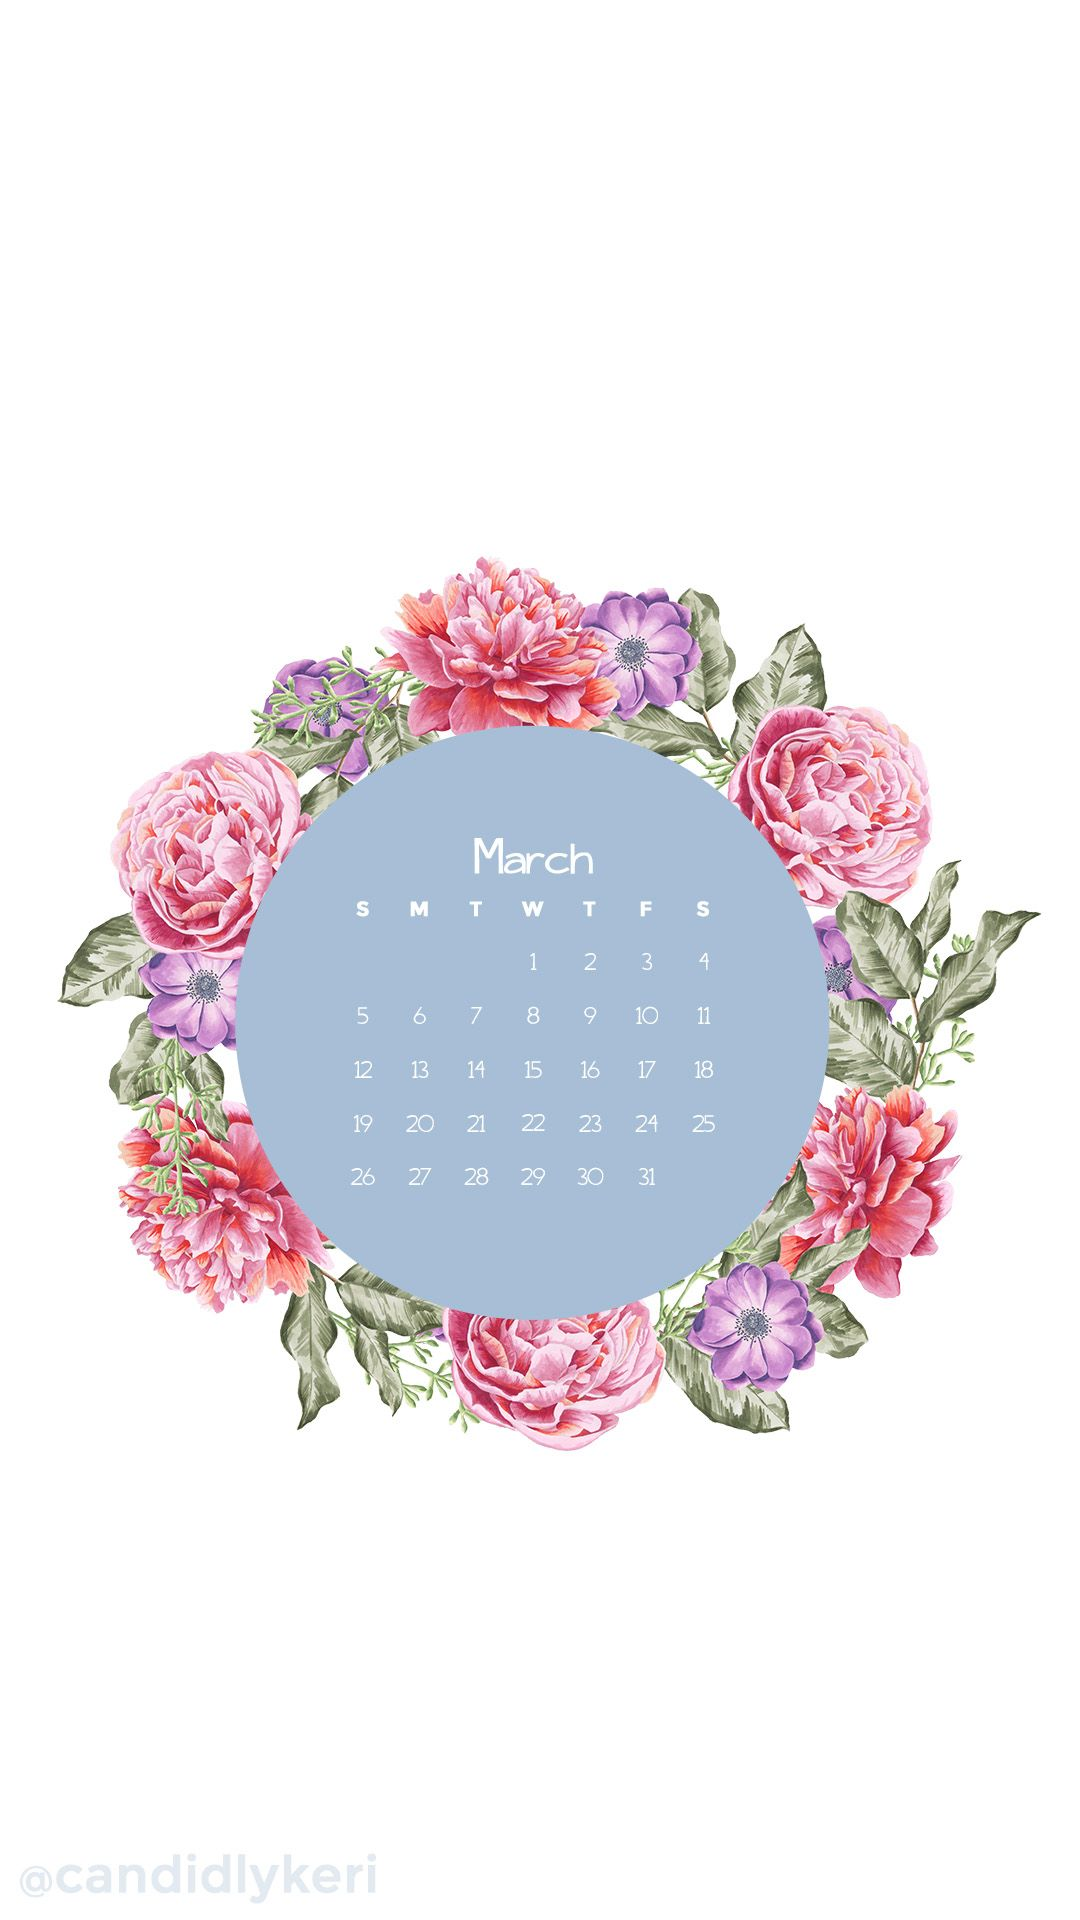 Wallpaper download blog - Flower Crown Pink Flower March Calendar 2017 Wallpaper You Can Download For Free On The Blog